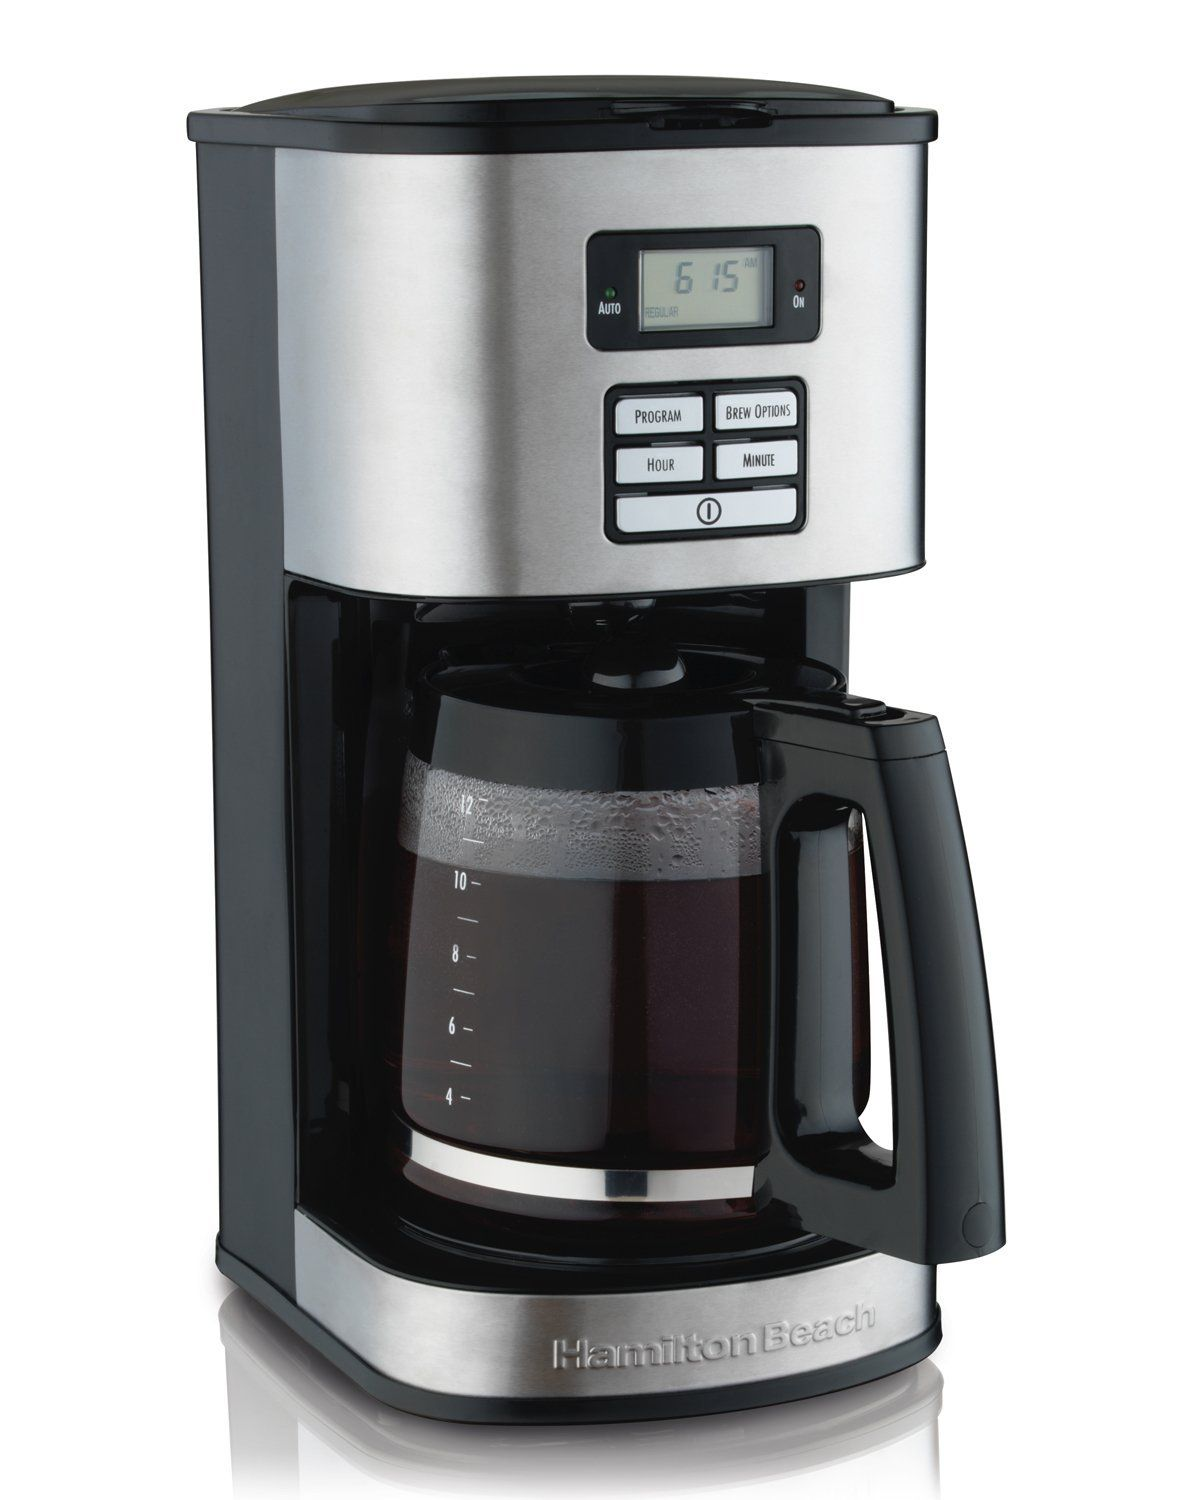 Hamilton Beach 12 Cup Coffee Maker Programmable 49618 Insider S Special Review You Can Stainless Steel Coffee Maker Drip Coffee Maker Best Coffee Maker